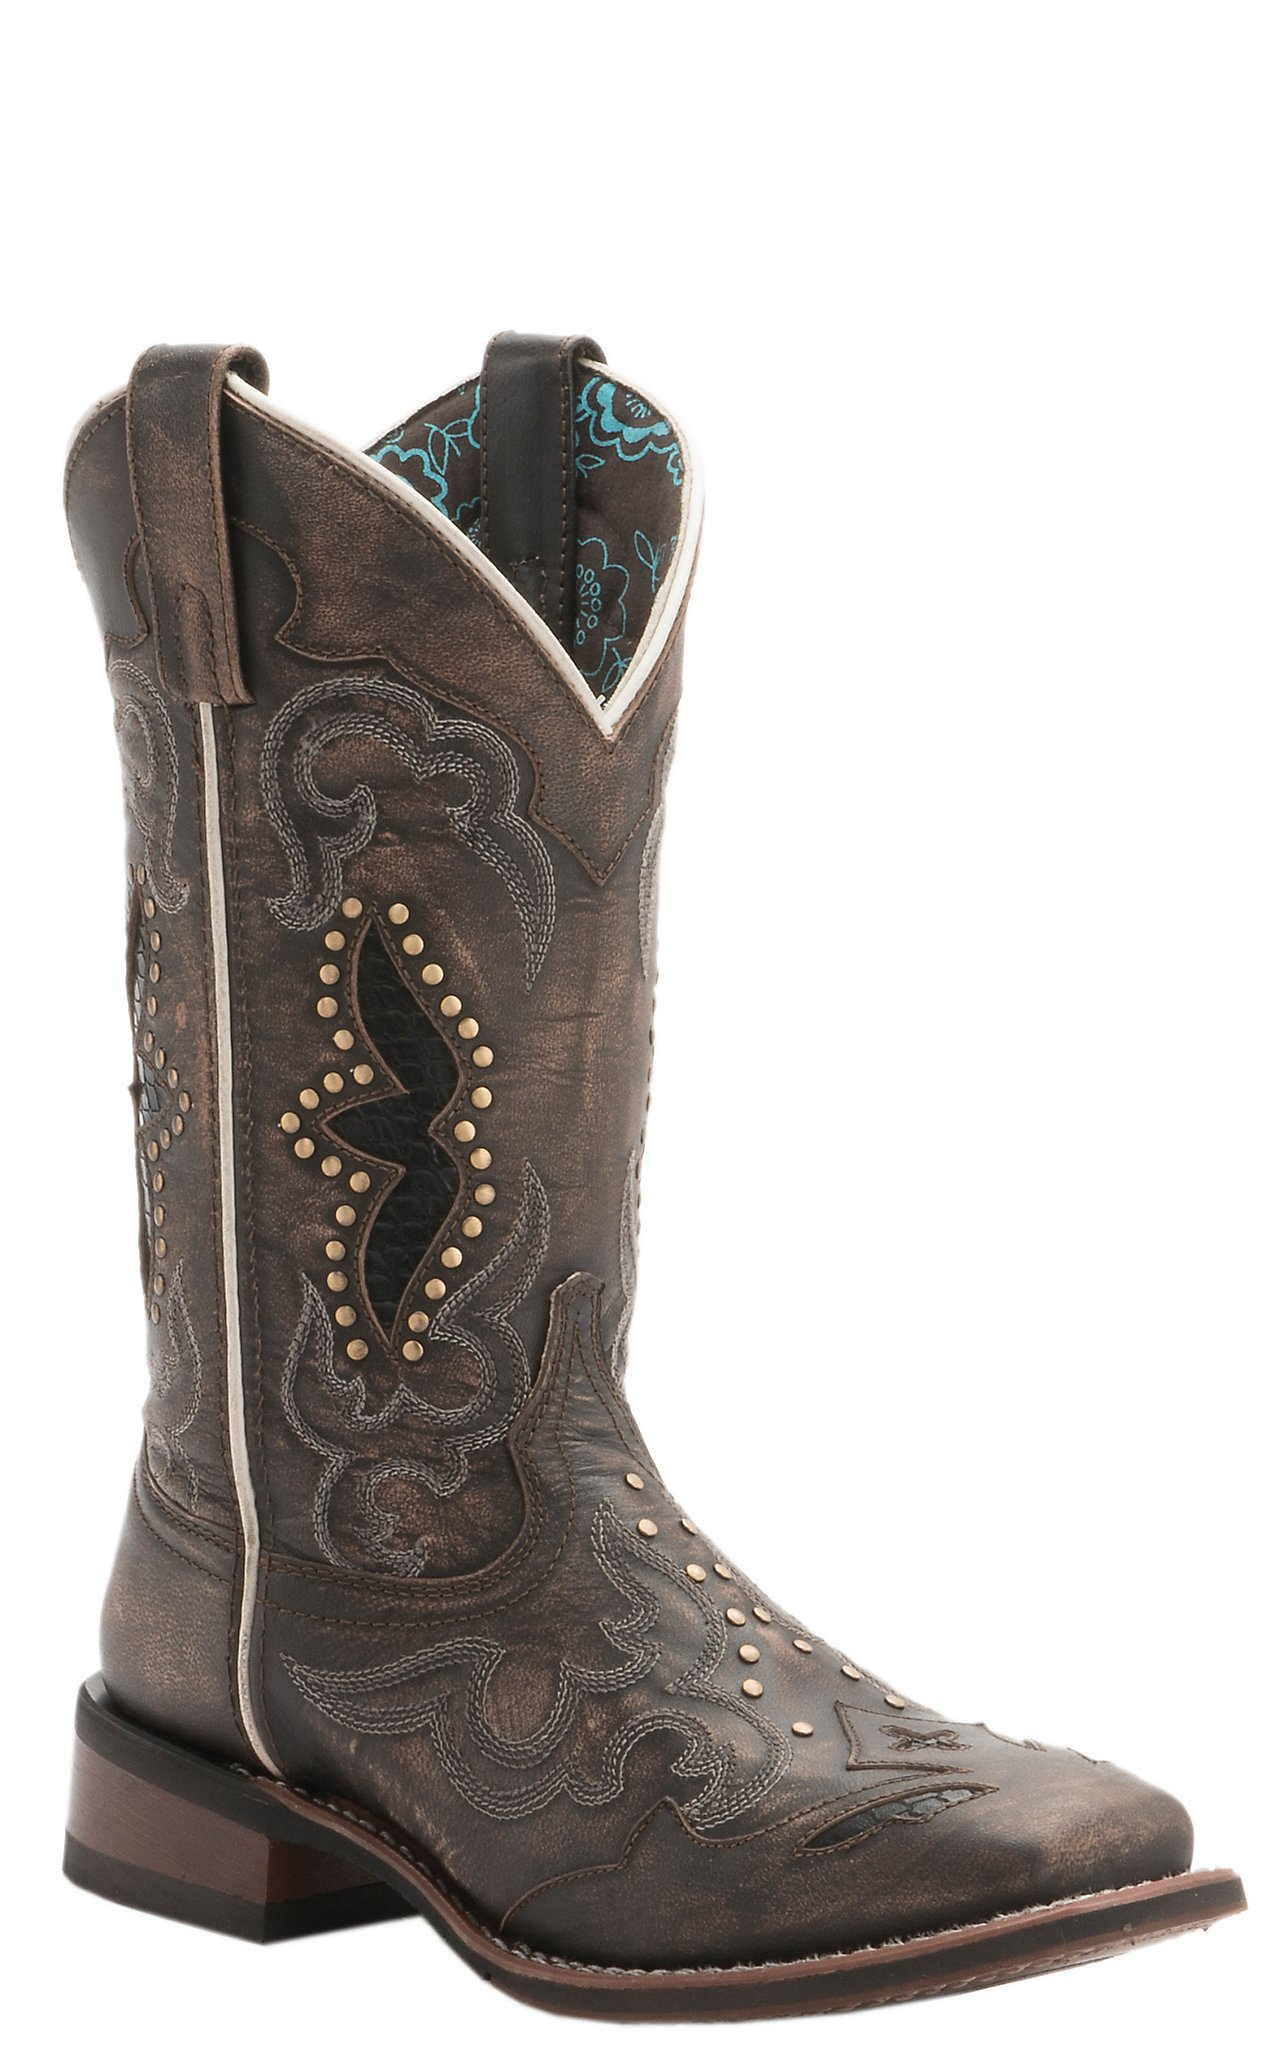 Cheap Cowgirl Boots | Cheap Women's Cowboy Boots | Cavender's